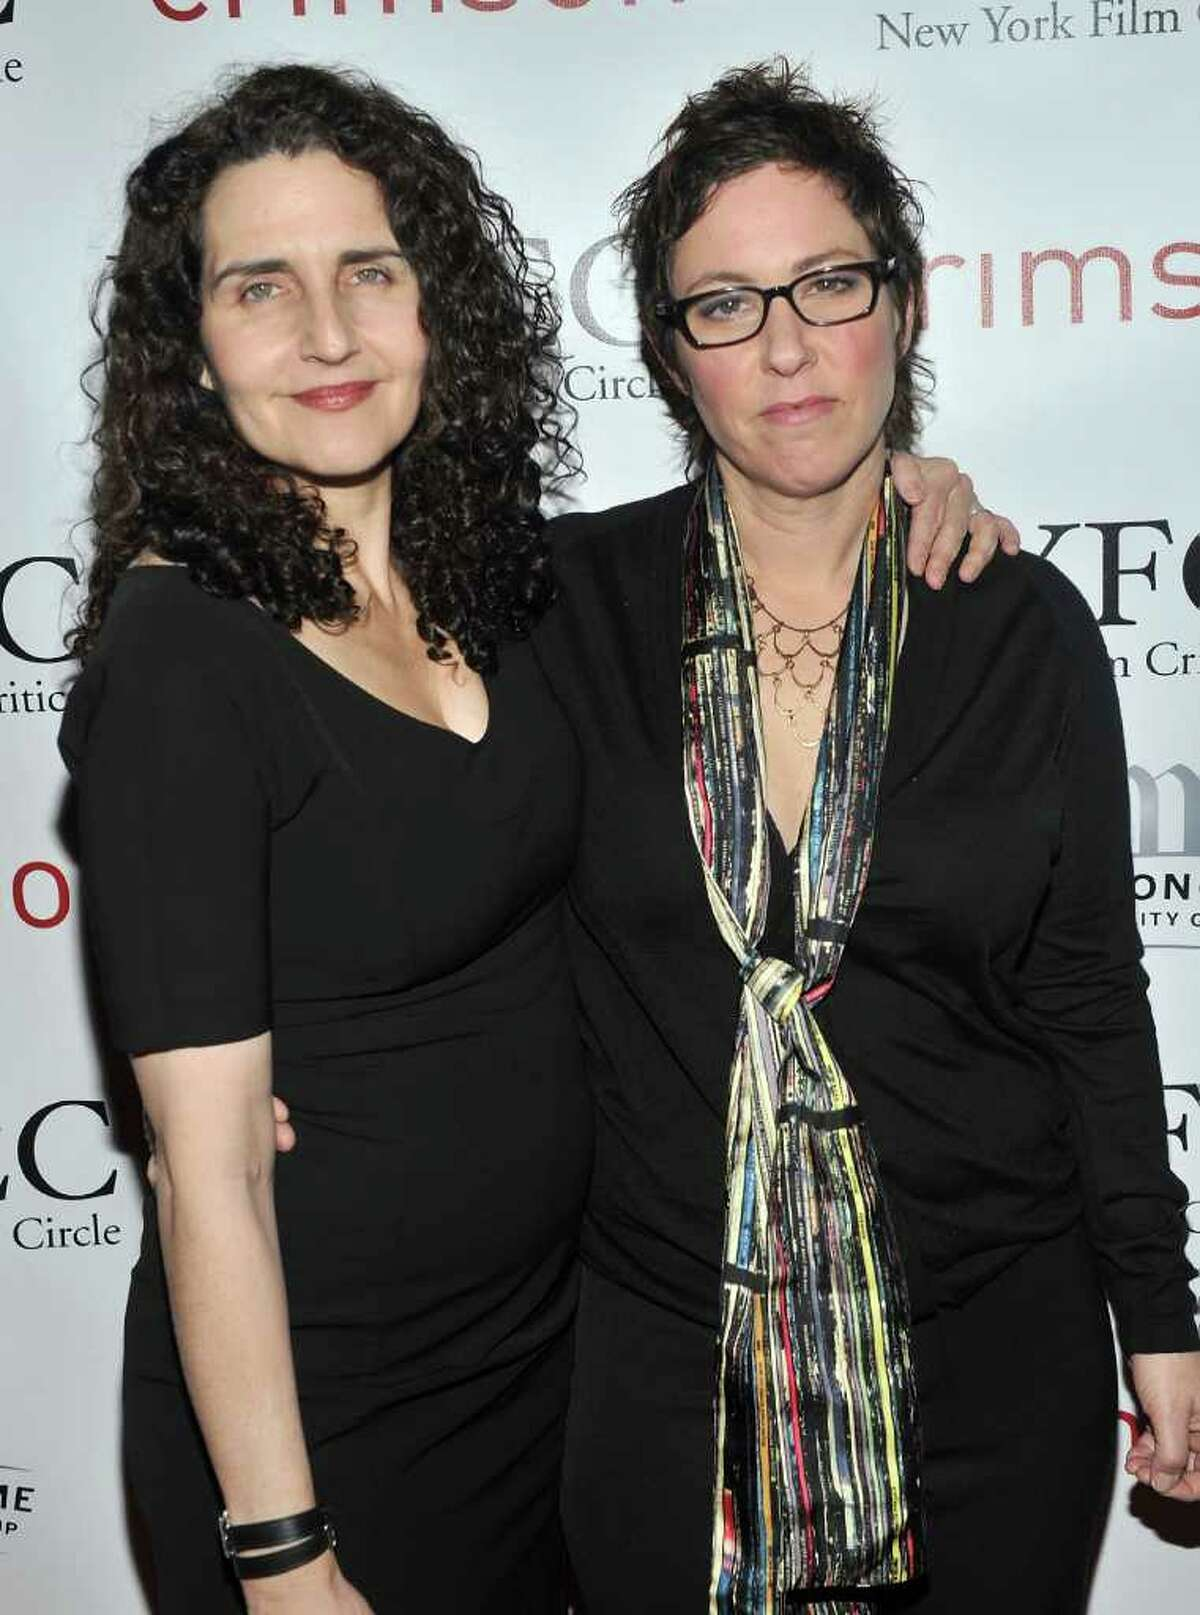 NEW YORK, NY - JANUARY 10: Filmmakers Lisa Cholodenko and Tamara Jenkins attend the 2010 New York Film Critics Circle Awards at Crimson on January 10, 2011 in New York City. (Photo by Stephen Lovekin/Getty Images) *** Local Caption *** Lisa Cholodenko;Tamara Jenkins